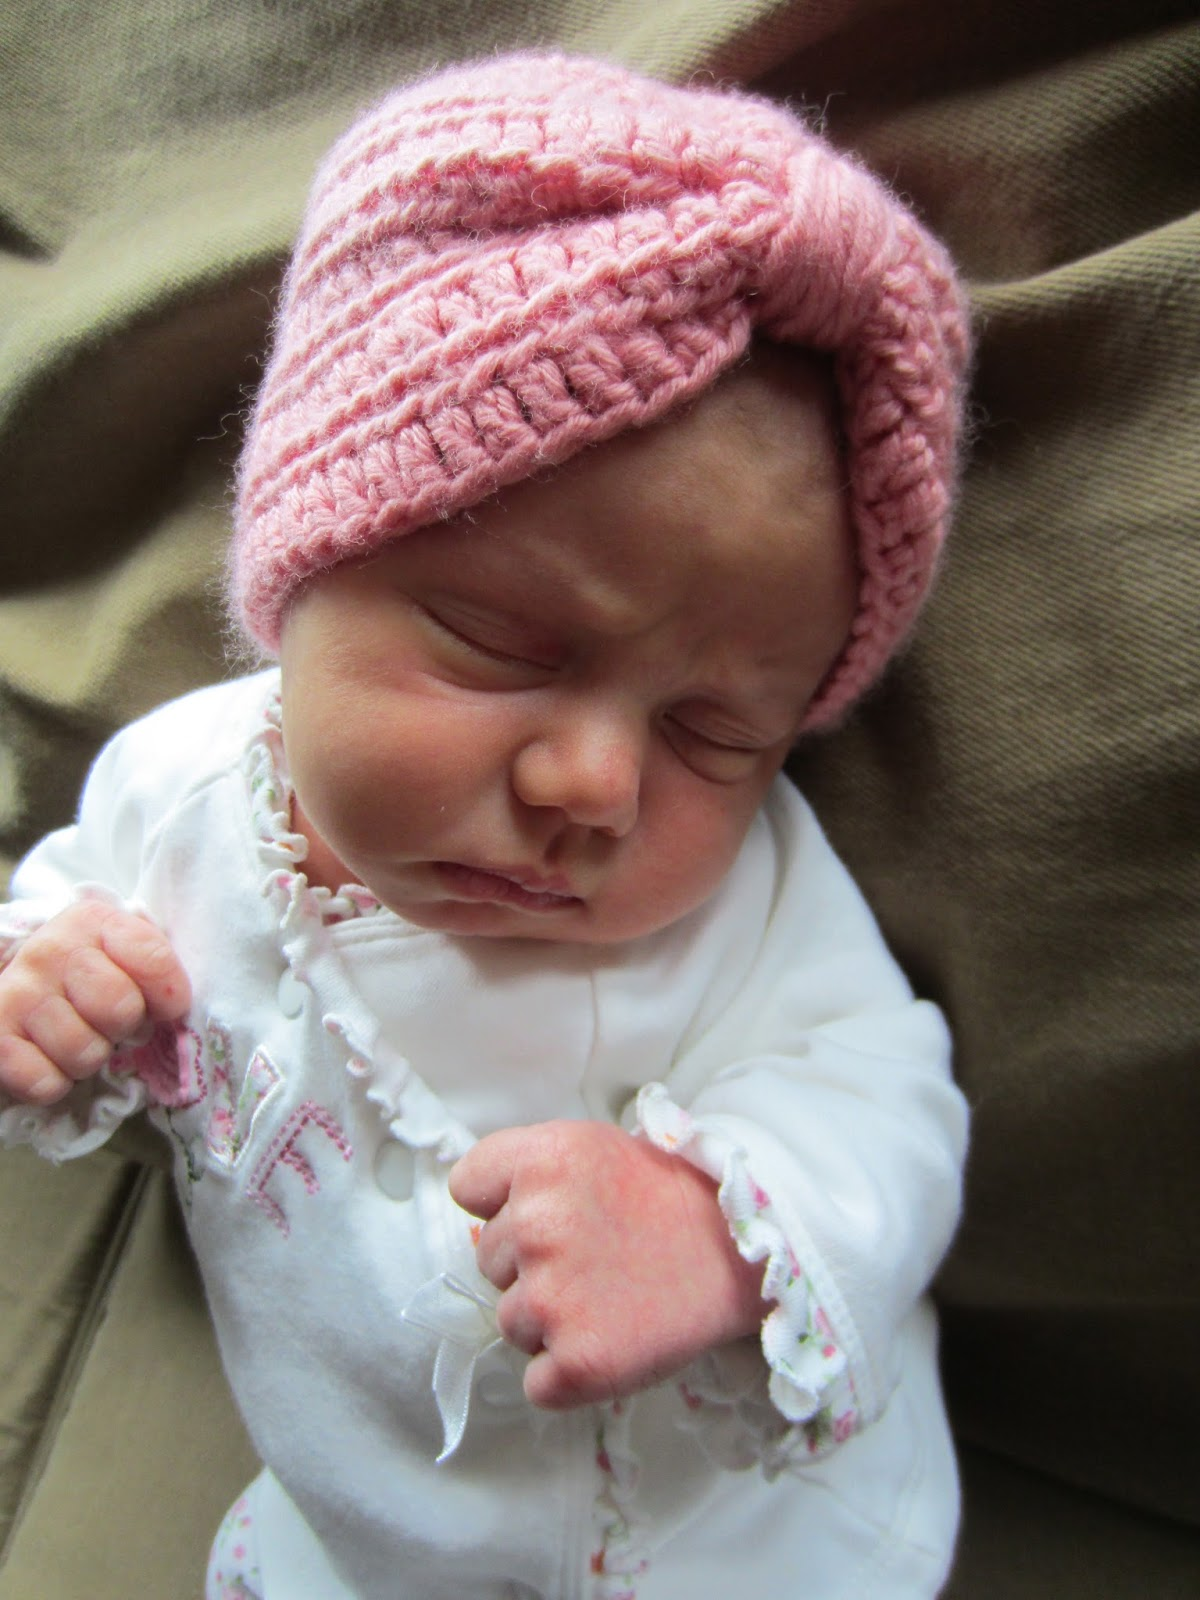 Groovy Moments: Crocheted Baby Turban